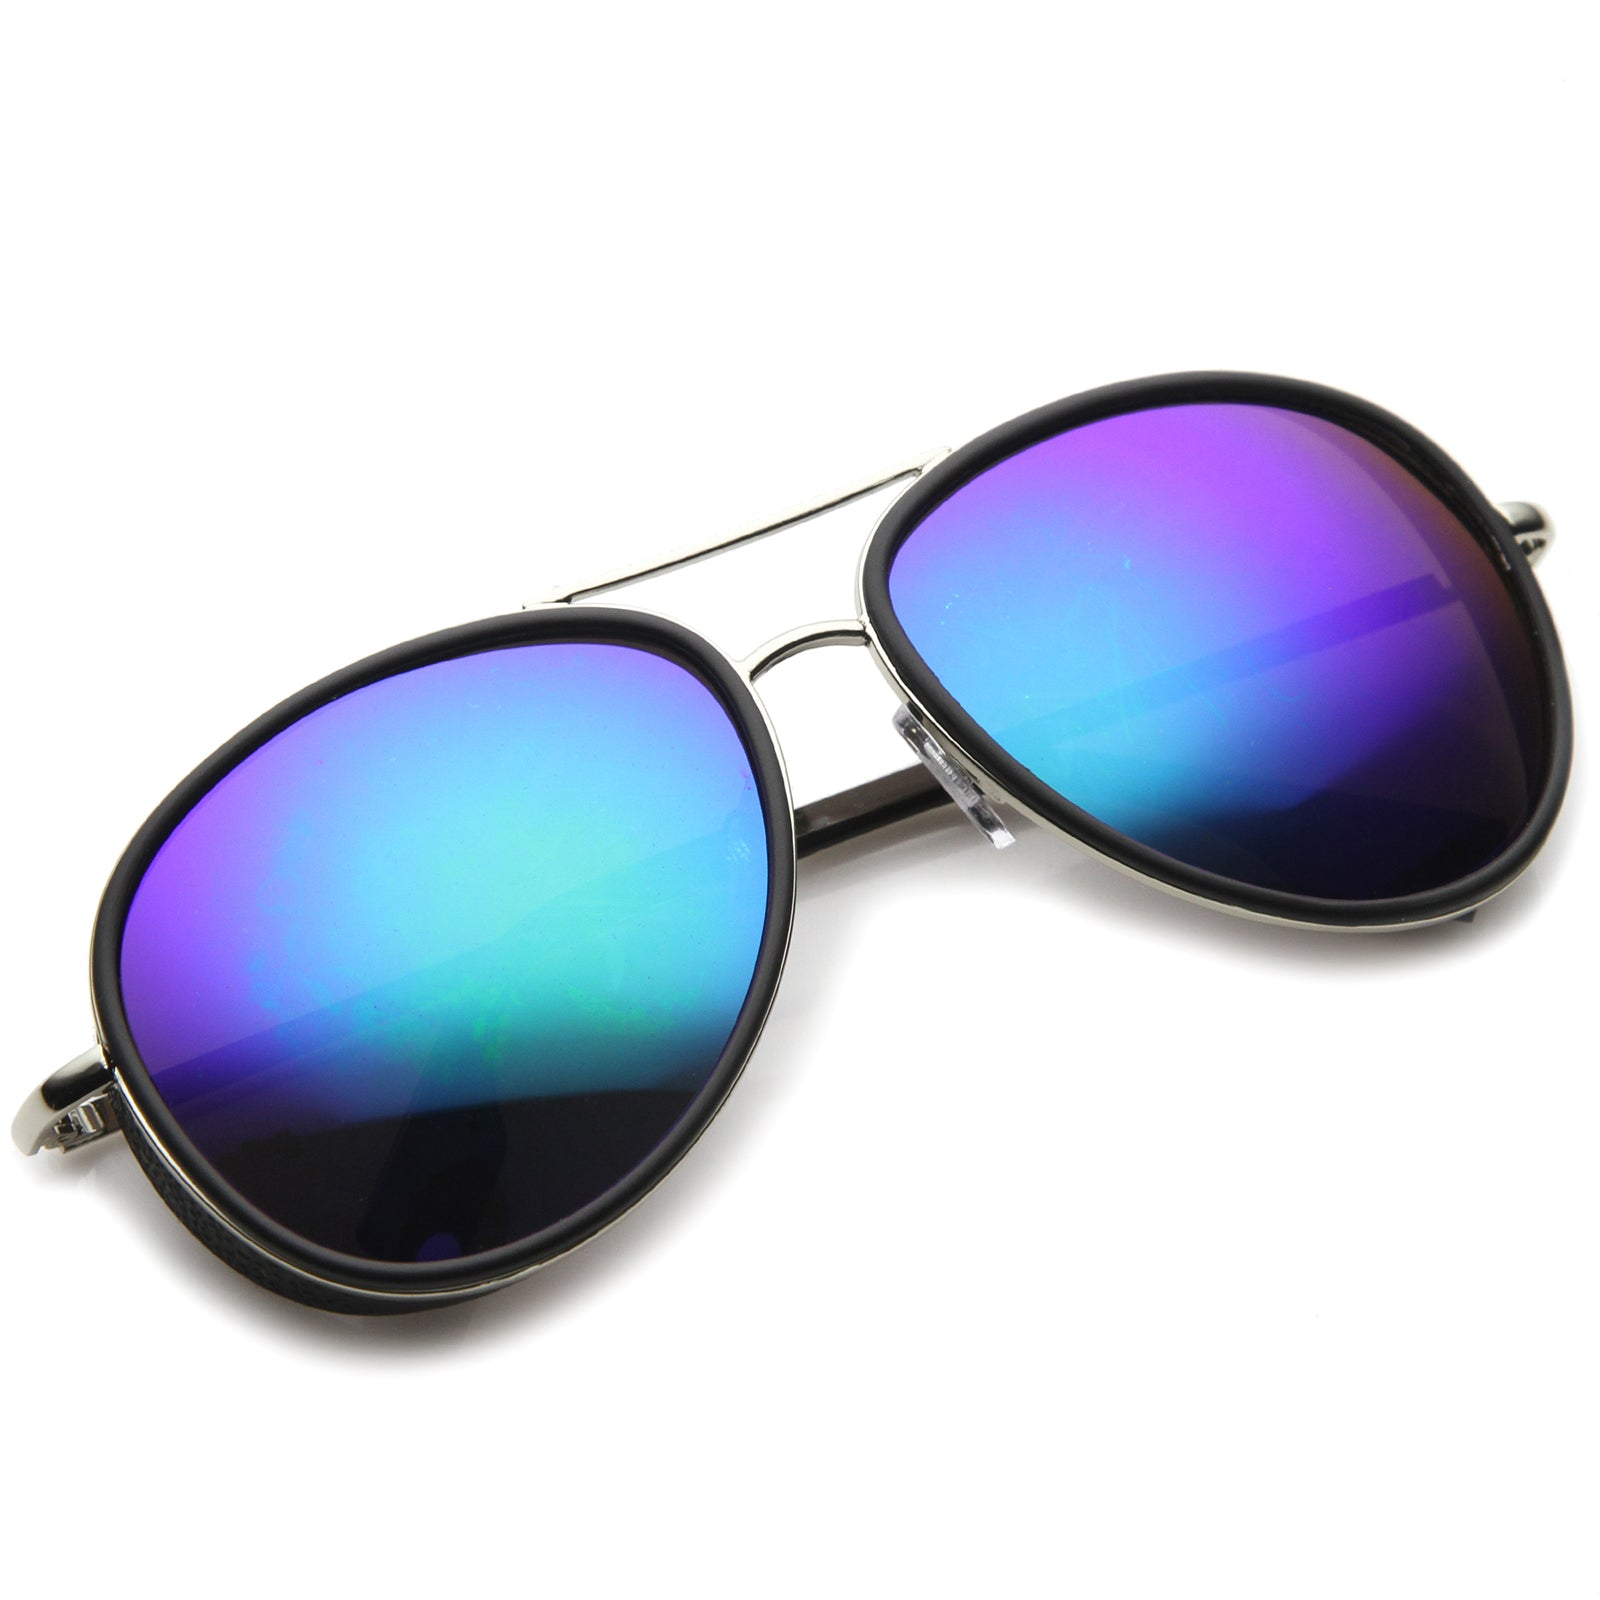 Mens Aviator Sunglasses With UV400 Protected Mirrored Lens - sunglass.la - 12